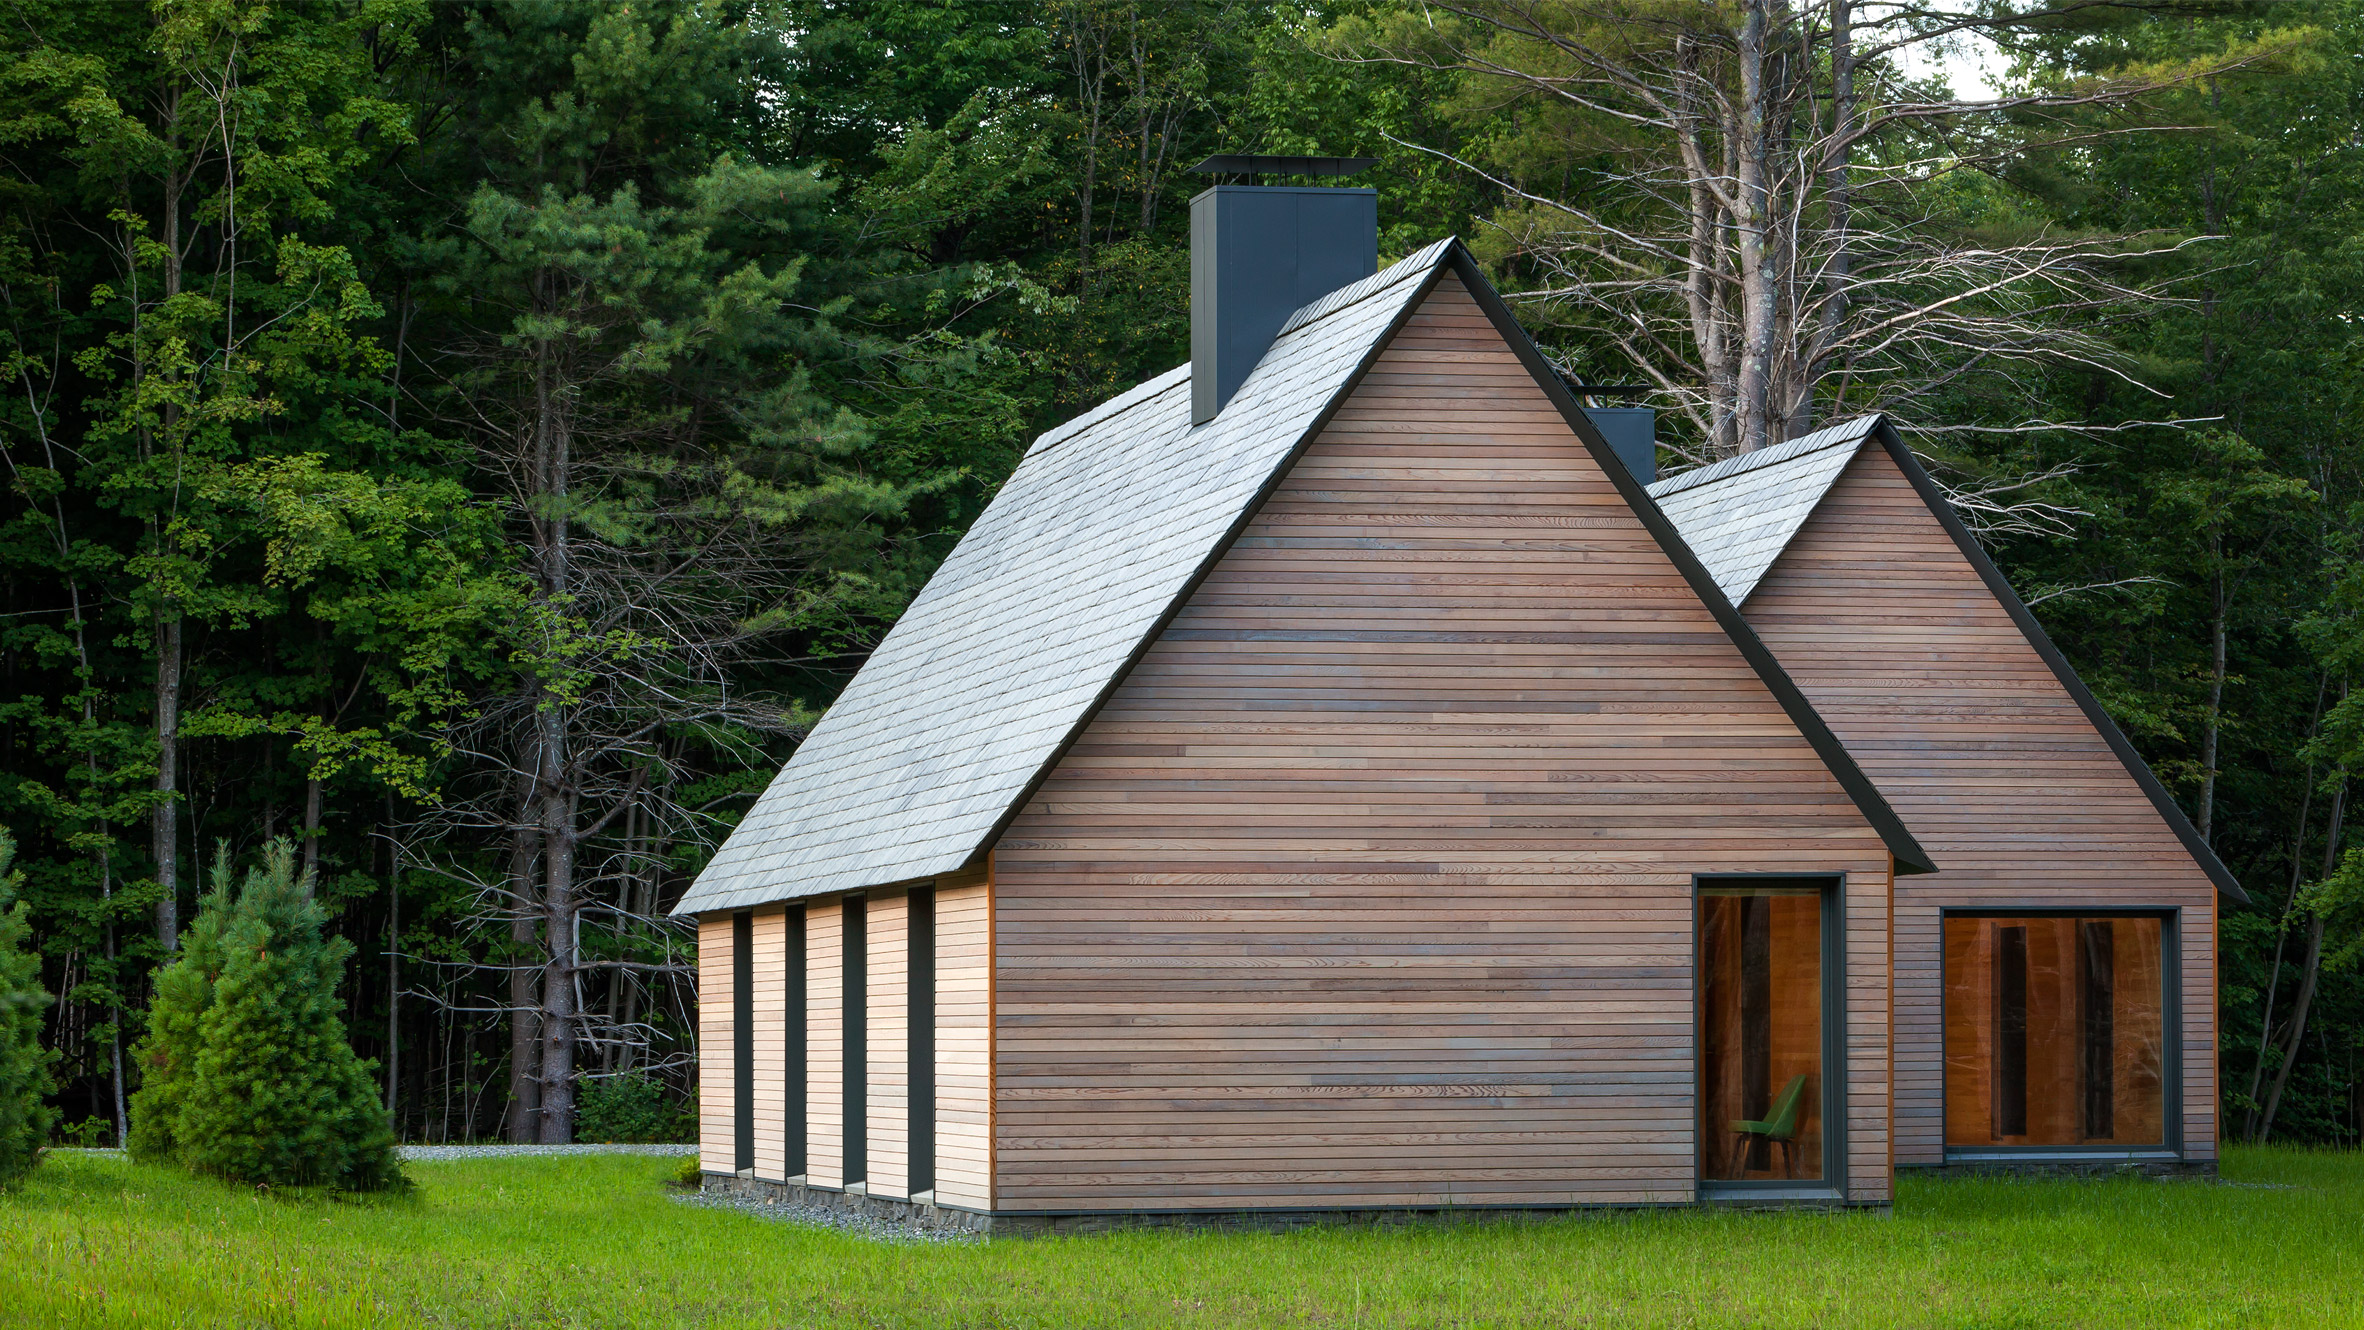 These Pared Down Cabins Were Built To Inspire Classical